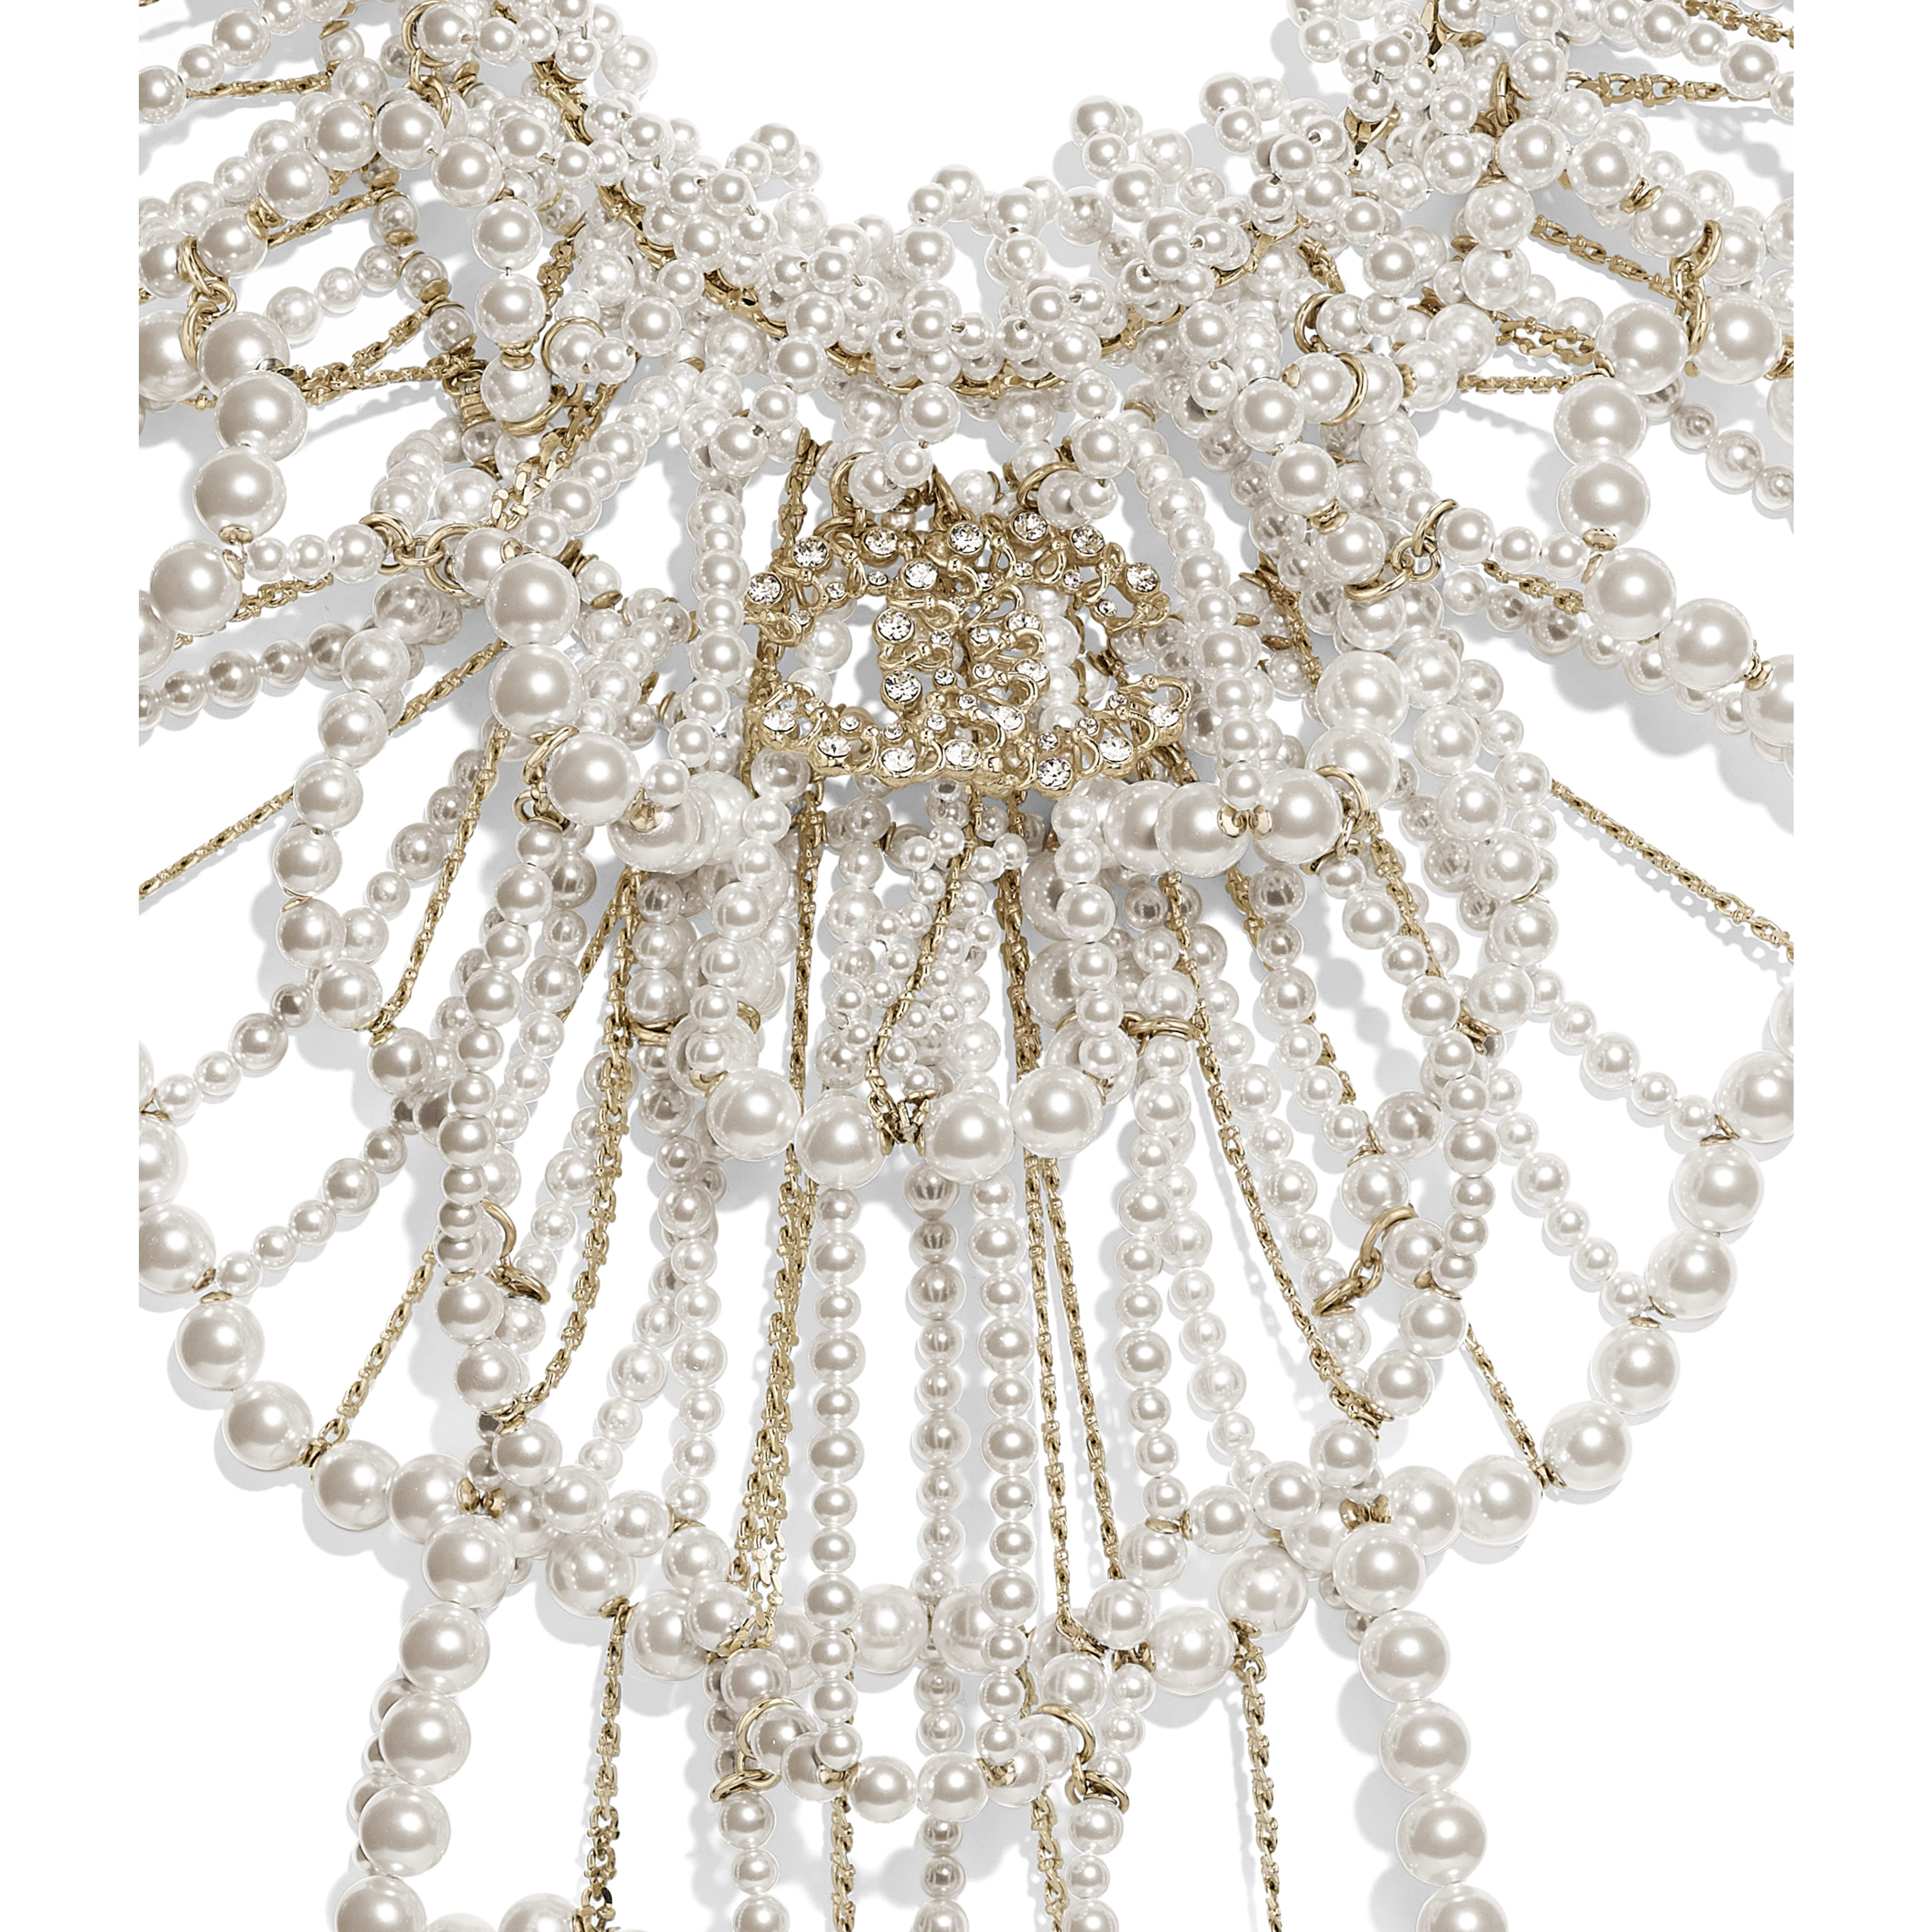 Necklace - Gold, Pearly White & Crystal - Metal, Glass Pearls & Diamantés - Other view - see full sized version